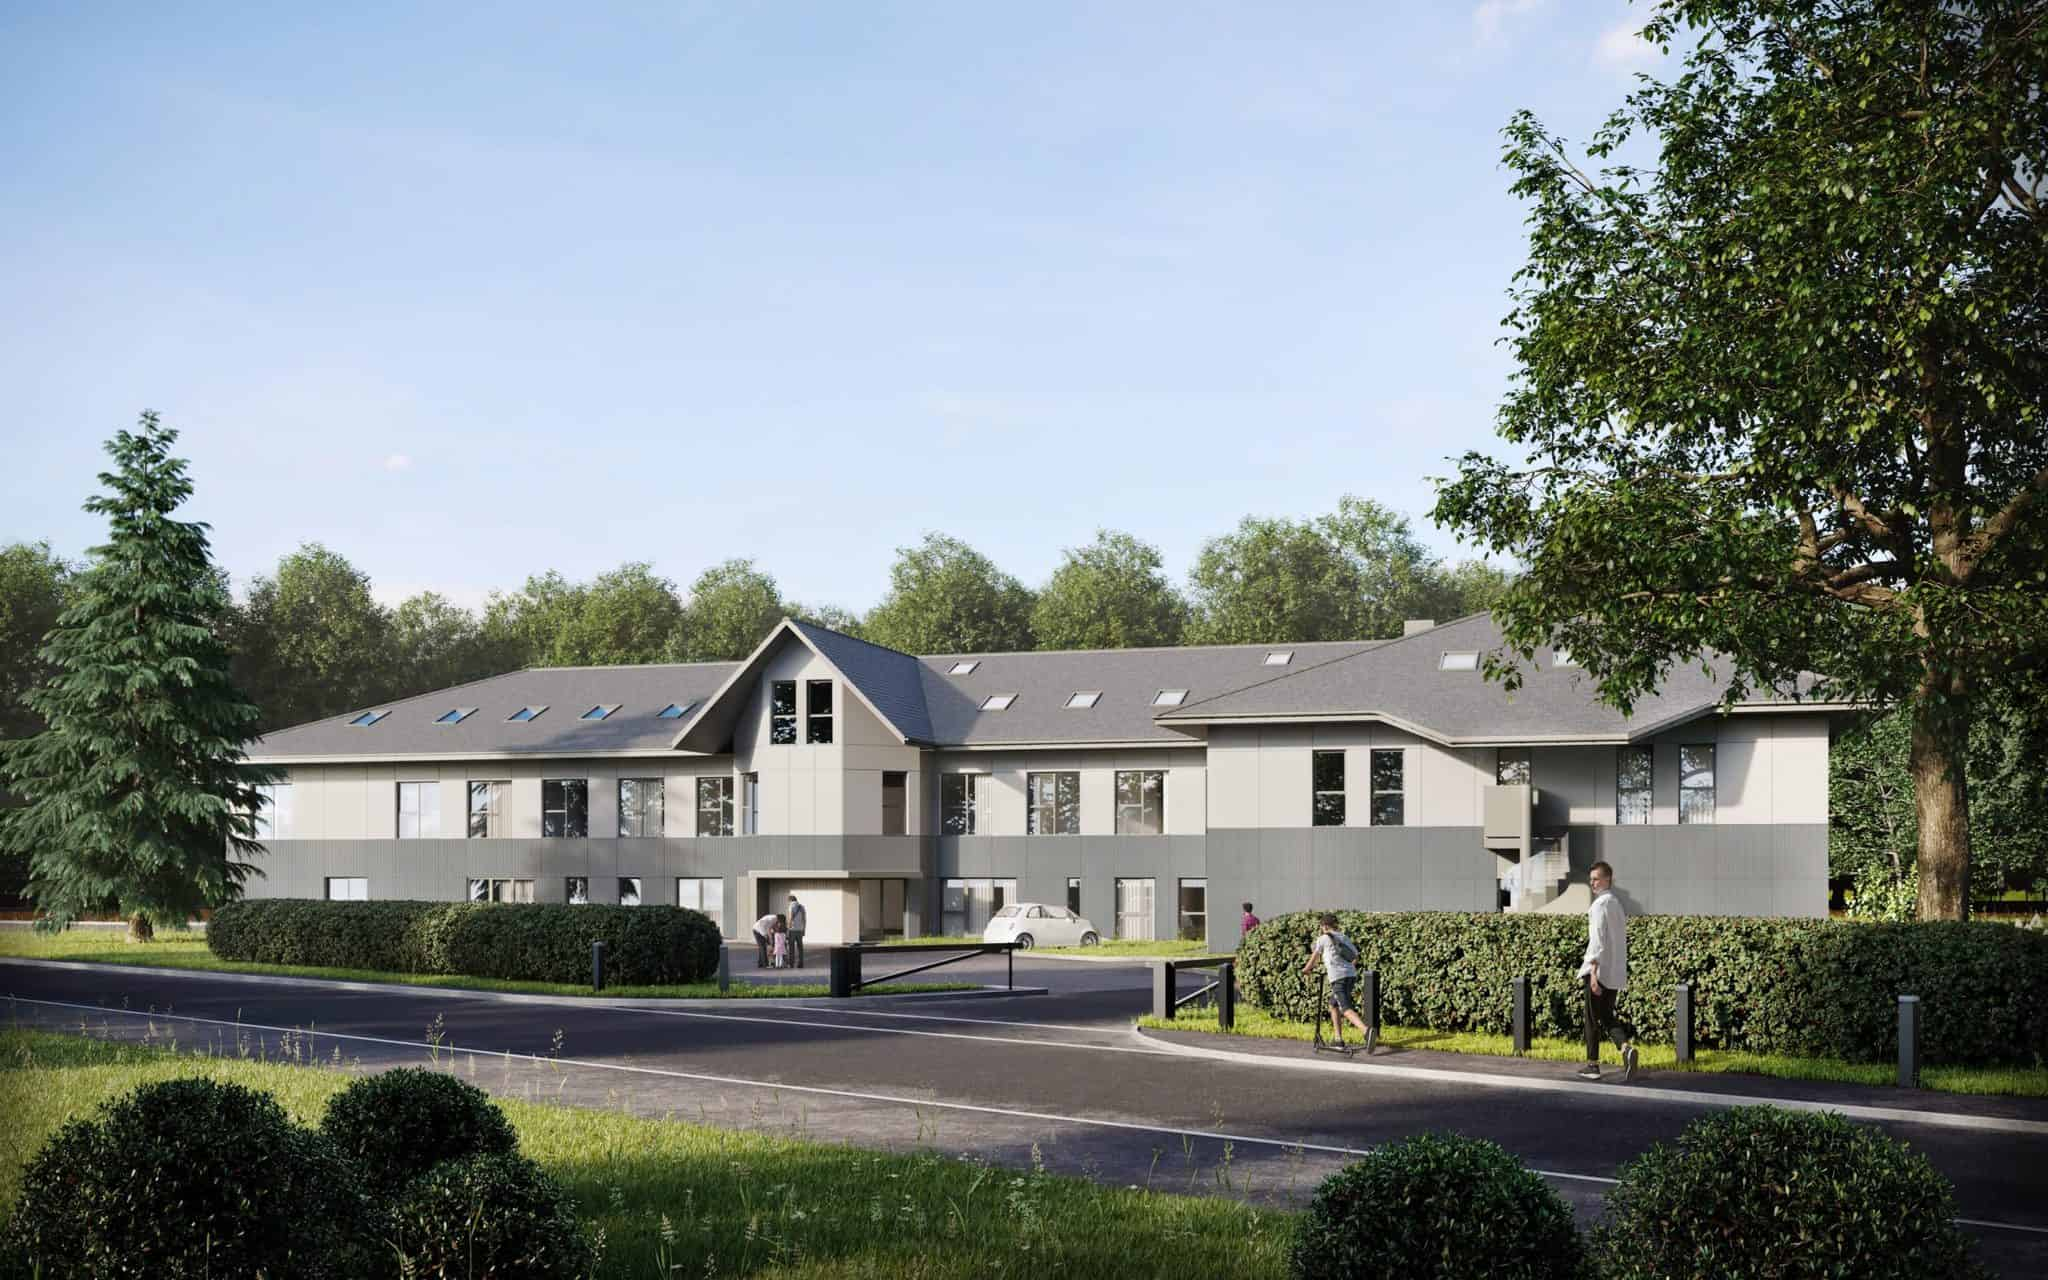 Bagshot Manor: Apartment in Bagshot Surrey | Ocea Commercial to Residential Property Development